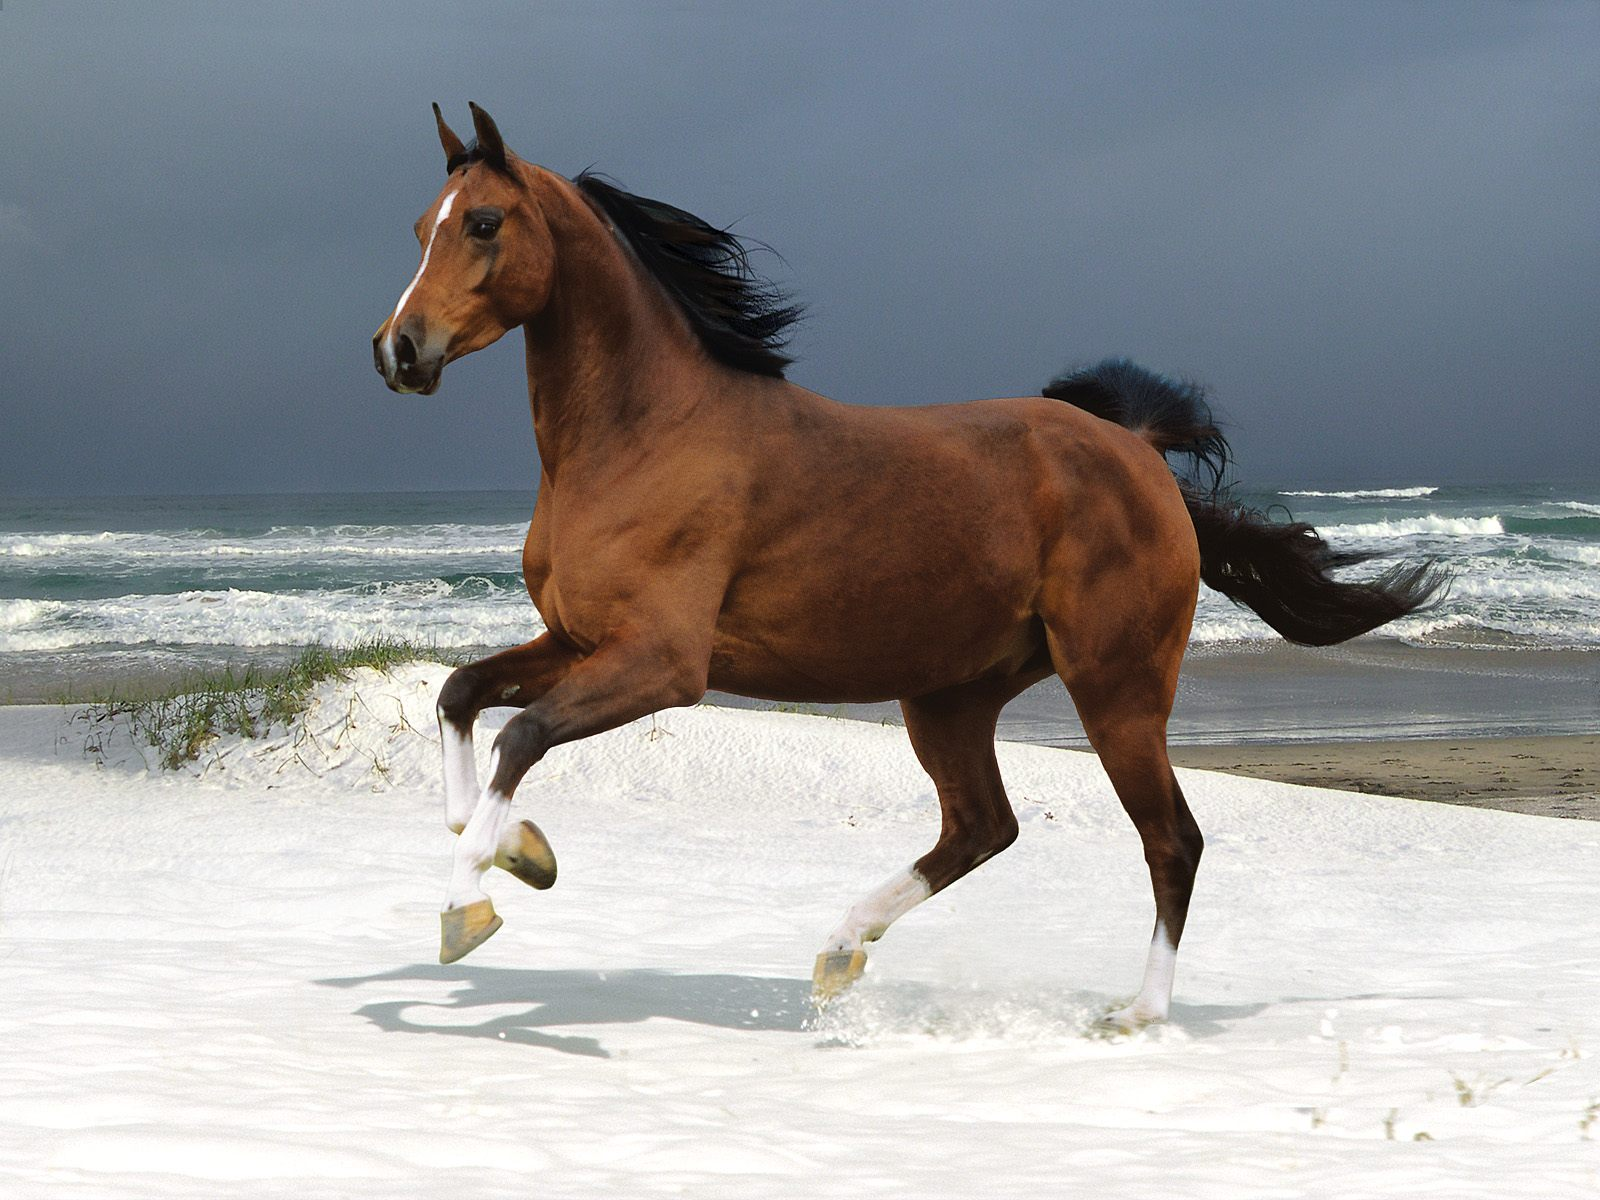 Horse HD Wallpapers Horses HD Wallpapers Full HD Wallpapers 1600x1200